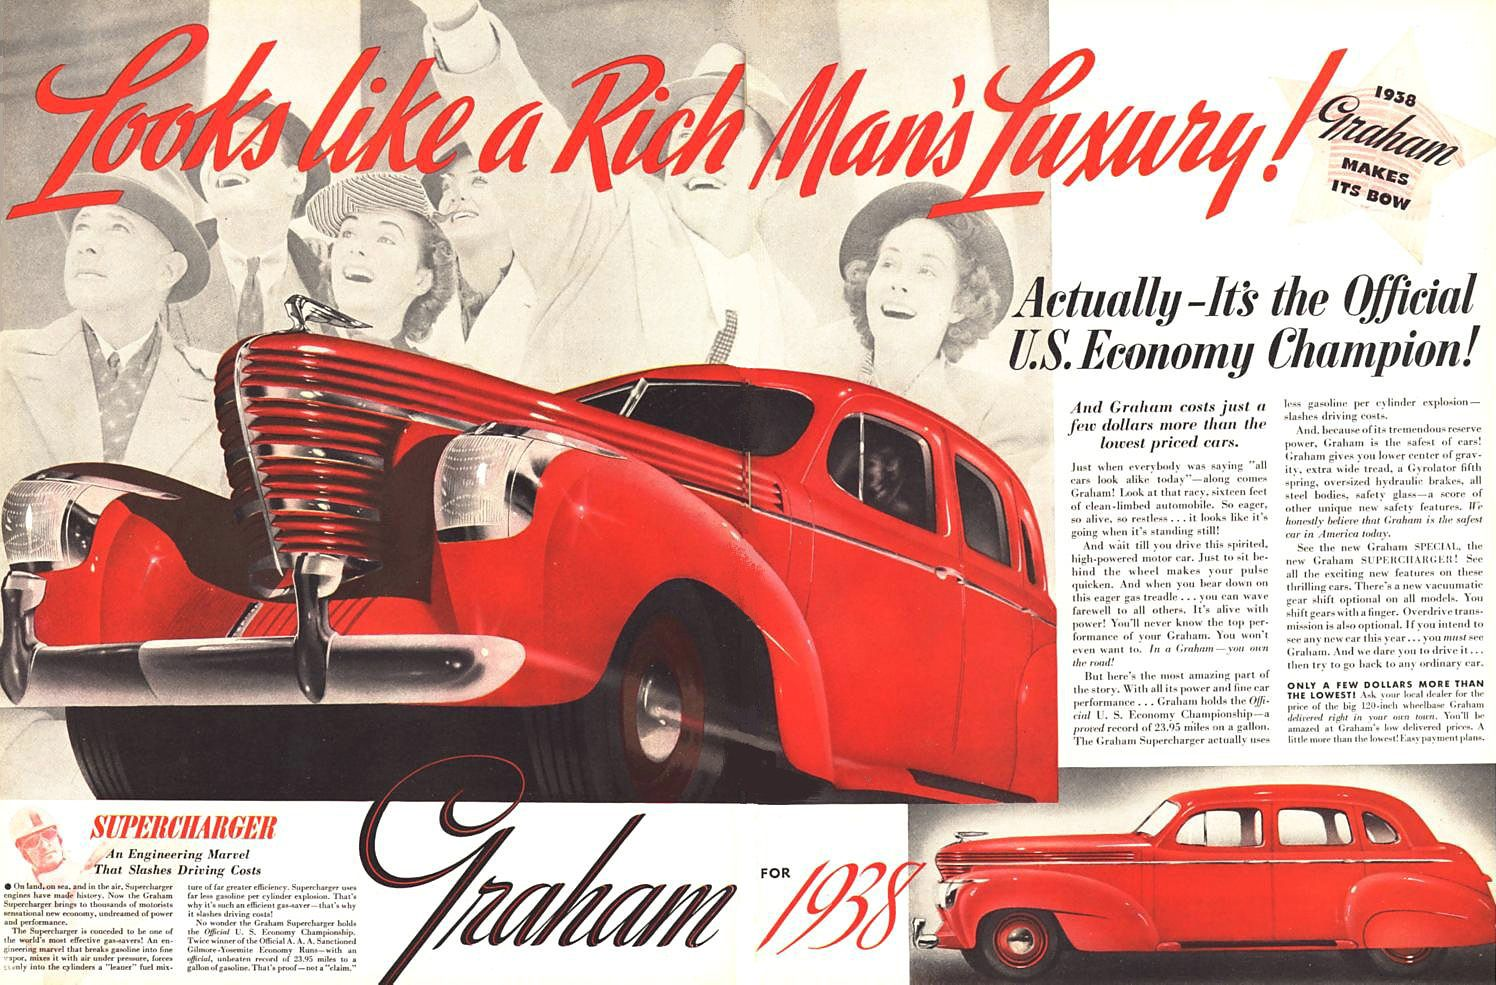 """Amos Northup of Murray Body was hired to design the 1938 model, but his death caused the final design to be completed by Graham engineers. The new model was introduced with the slogan """"Spirit of Motion"""". The fenders, wheel openings and grille all appeared to be moving forward. The design was widely praised by the American press and designers. It also won the Concours d'Elegance in Paris. Note how the cheering people in the advertisement are looking into the distance where the car is heading."""